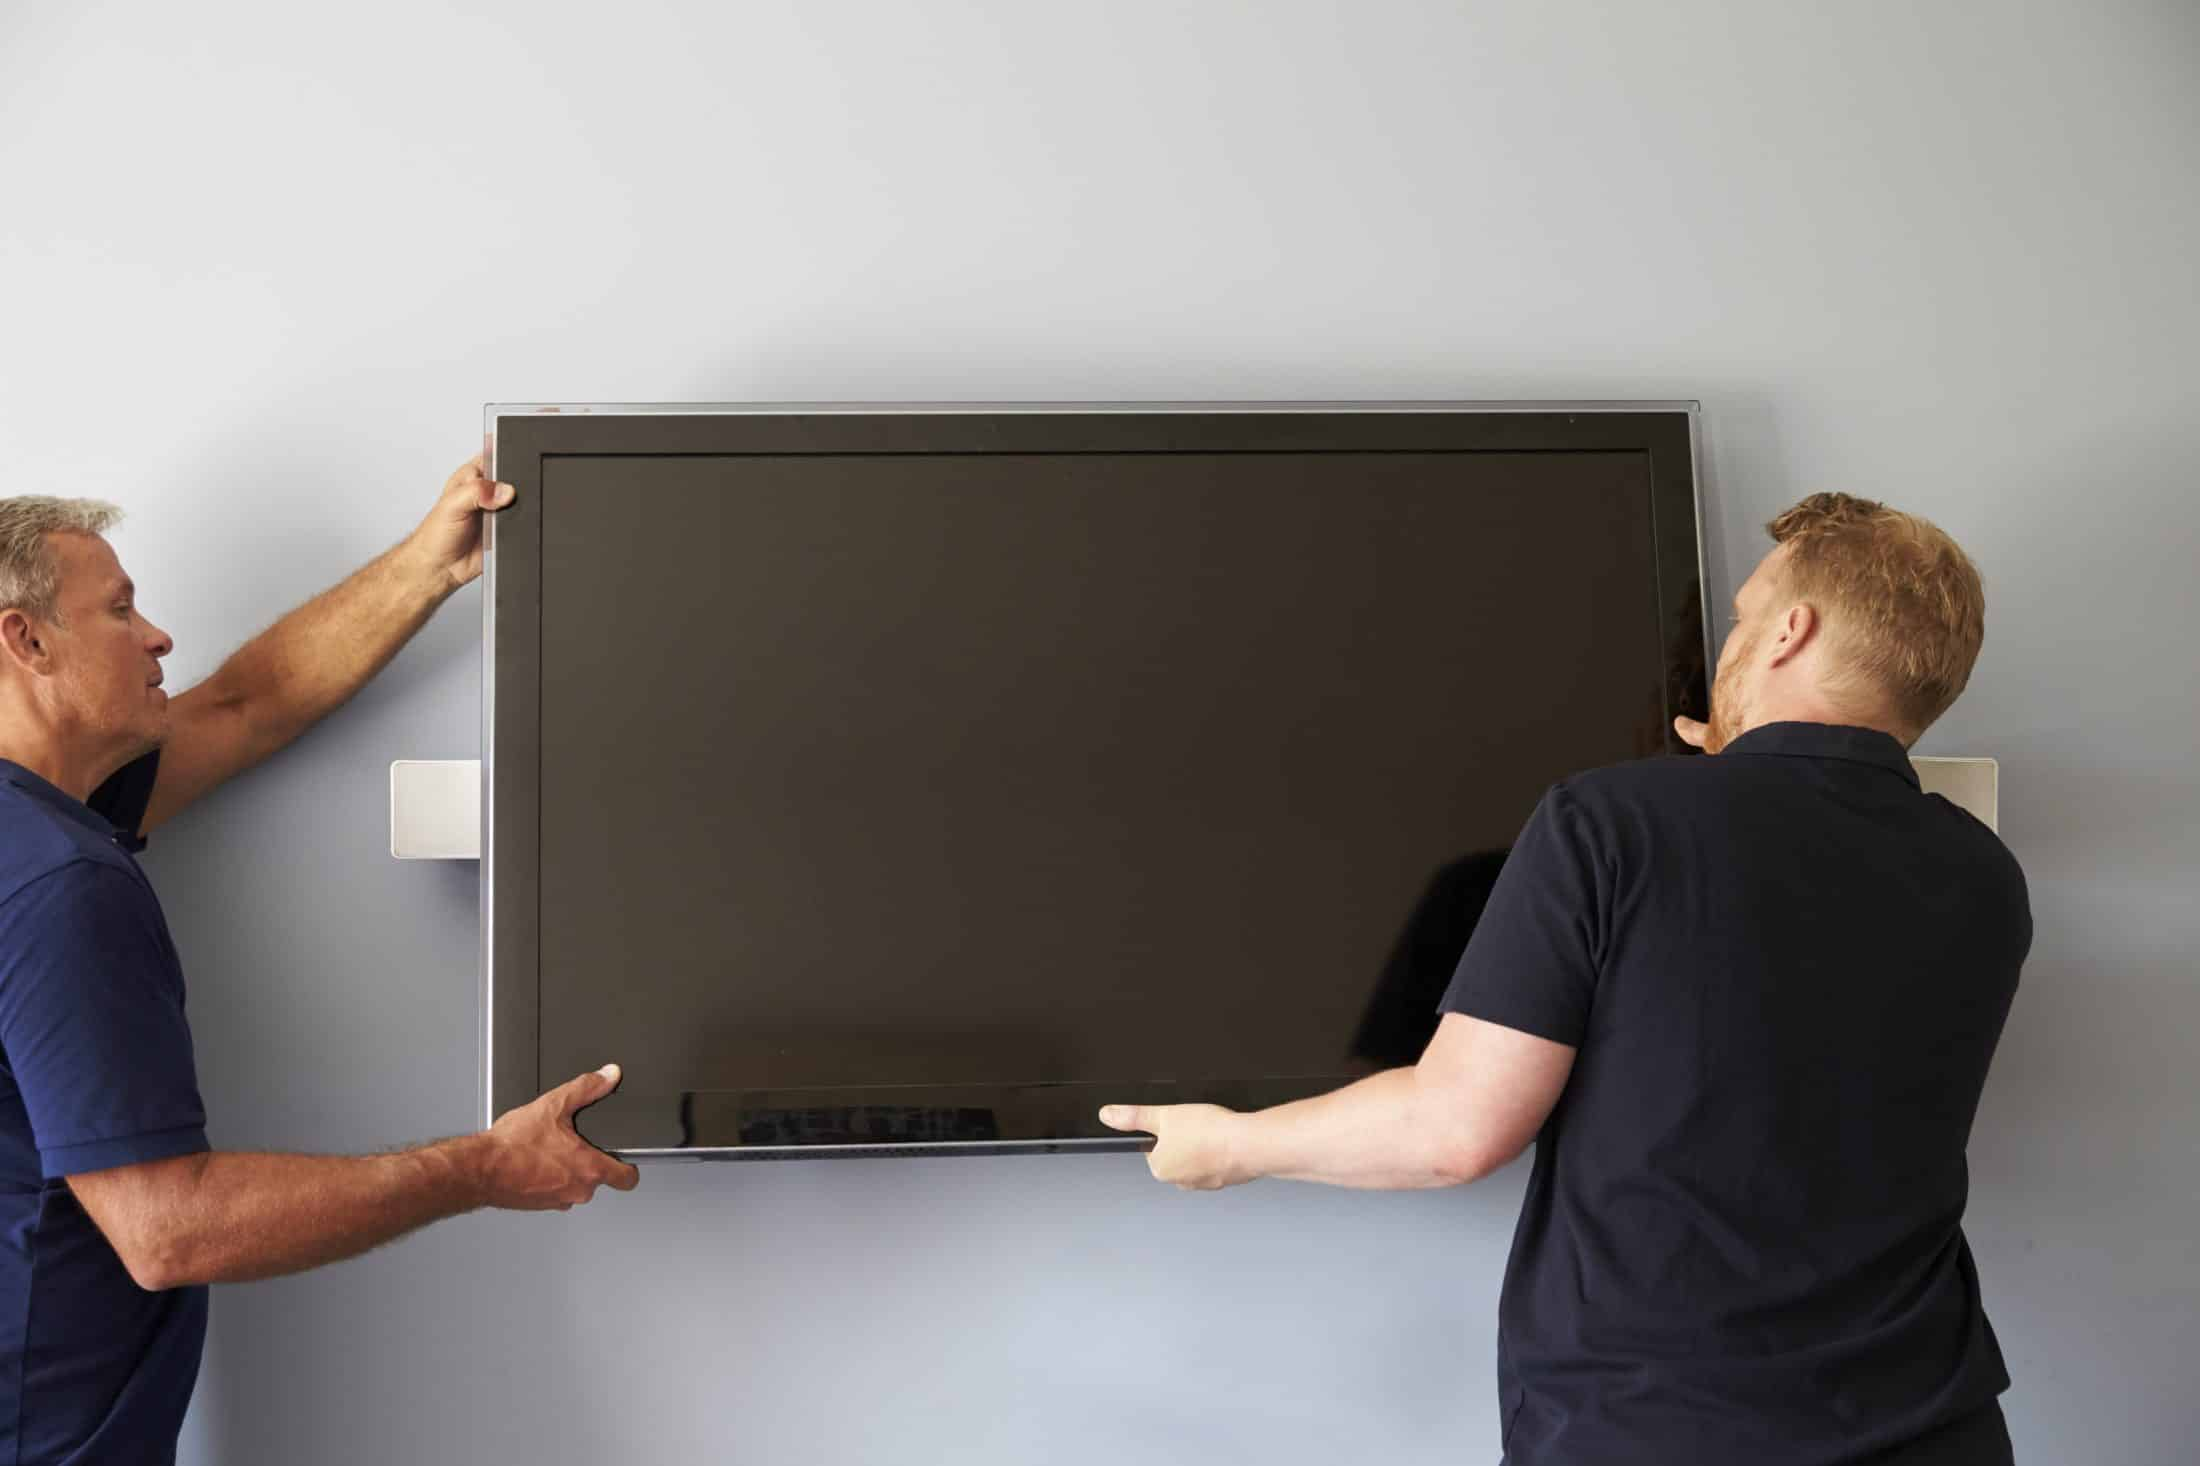 Tele Accrocher Au Mur T.v. Installations | Nortech Electronics - Tv & Applaince